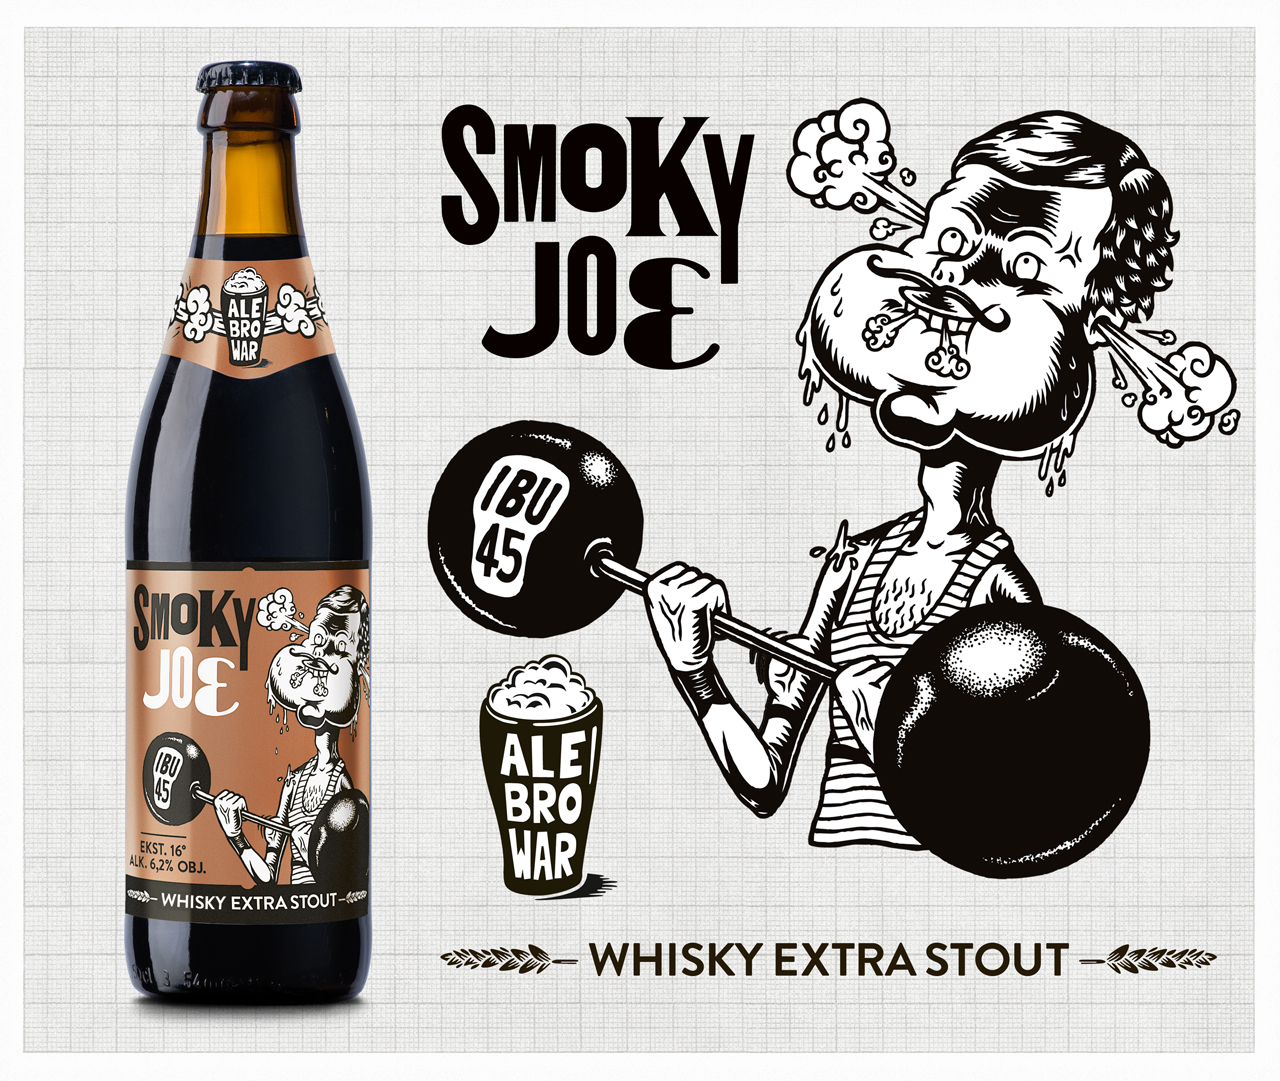 smoky-joe-alebrowar